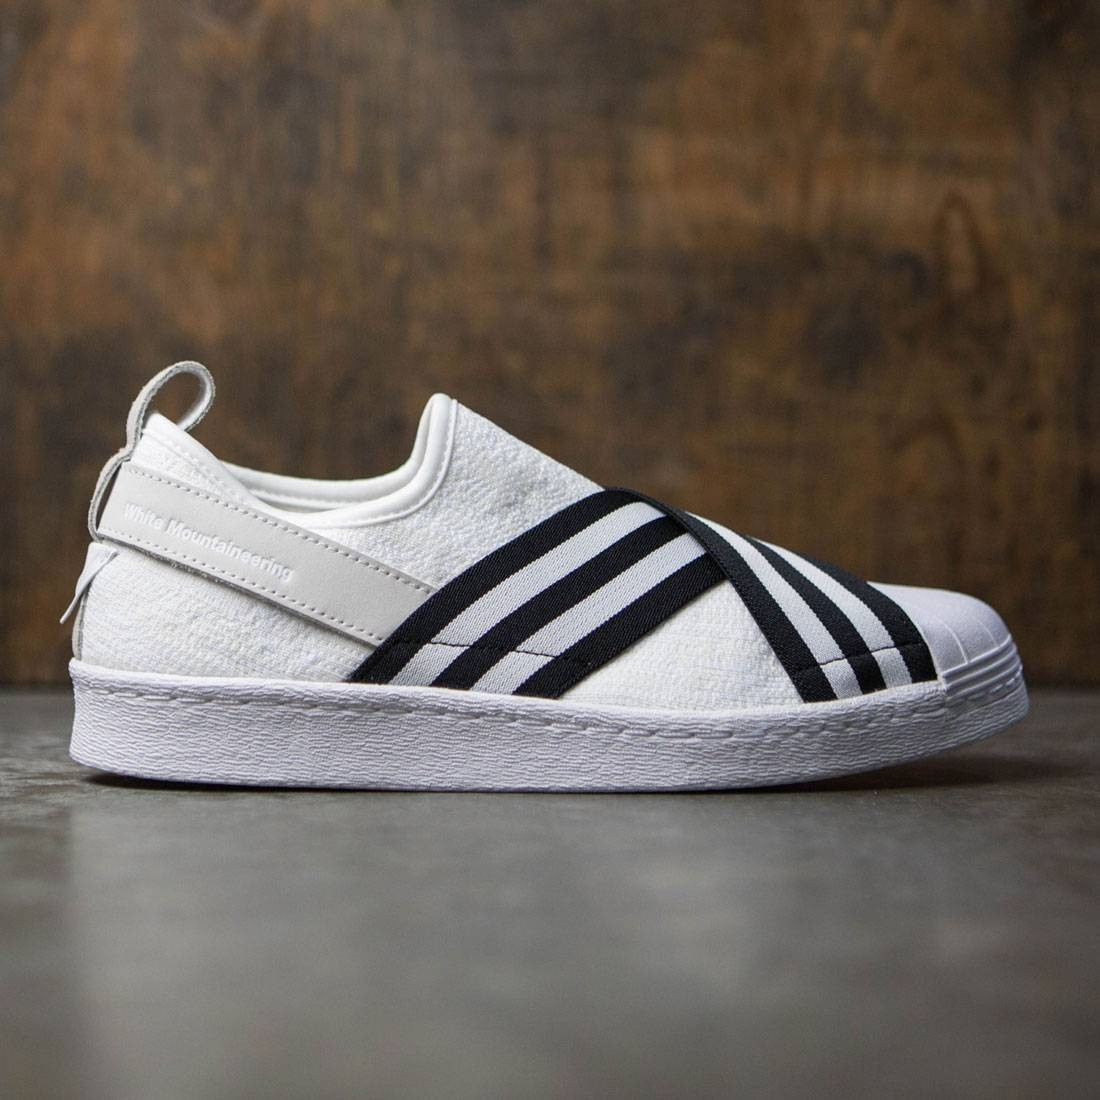 on sale afeb3 71995 Adidas Men White Mountaineering Superstar Slip-On Primeknit (white / core  black / footwear white)